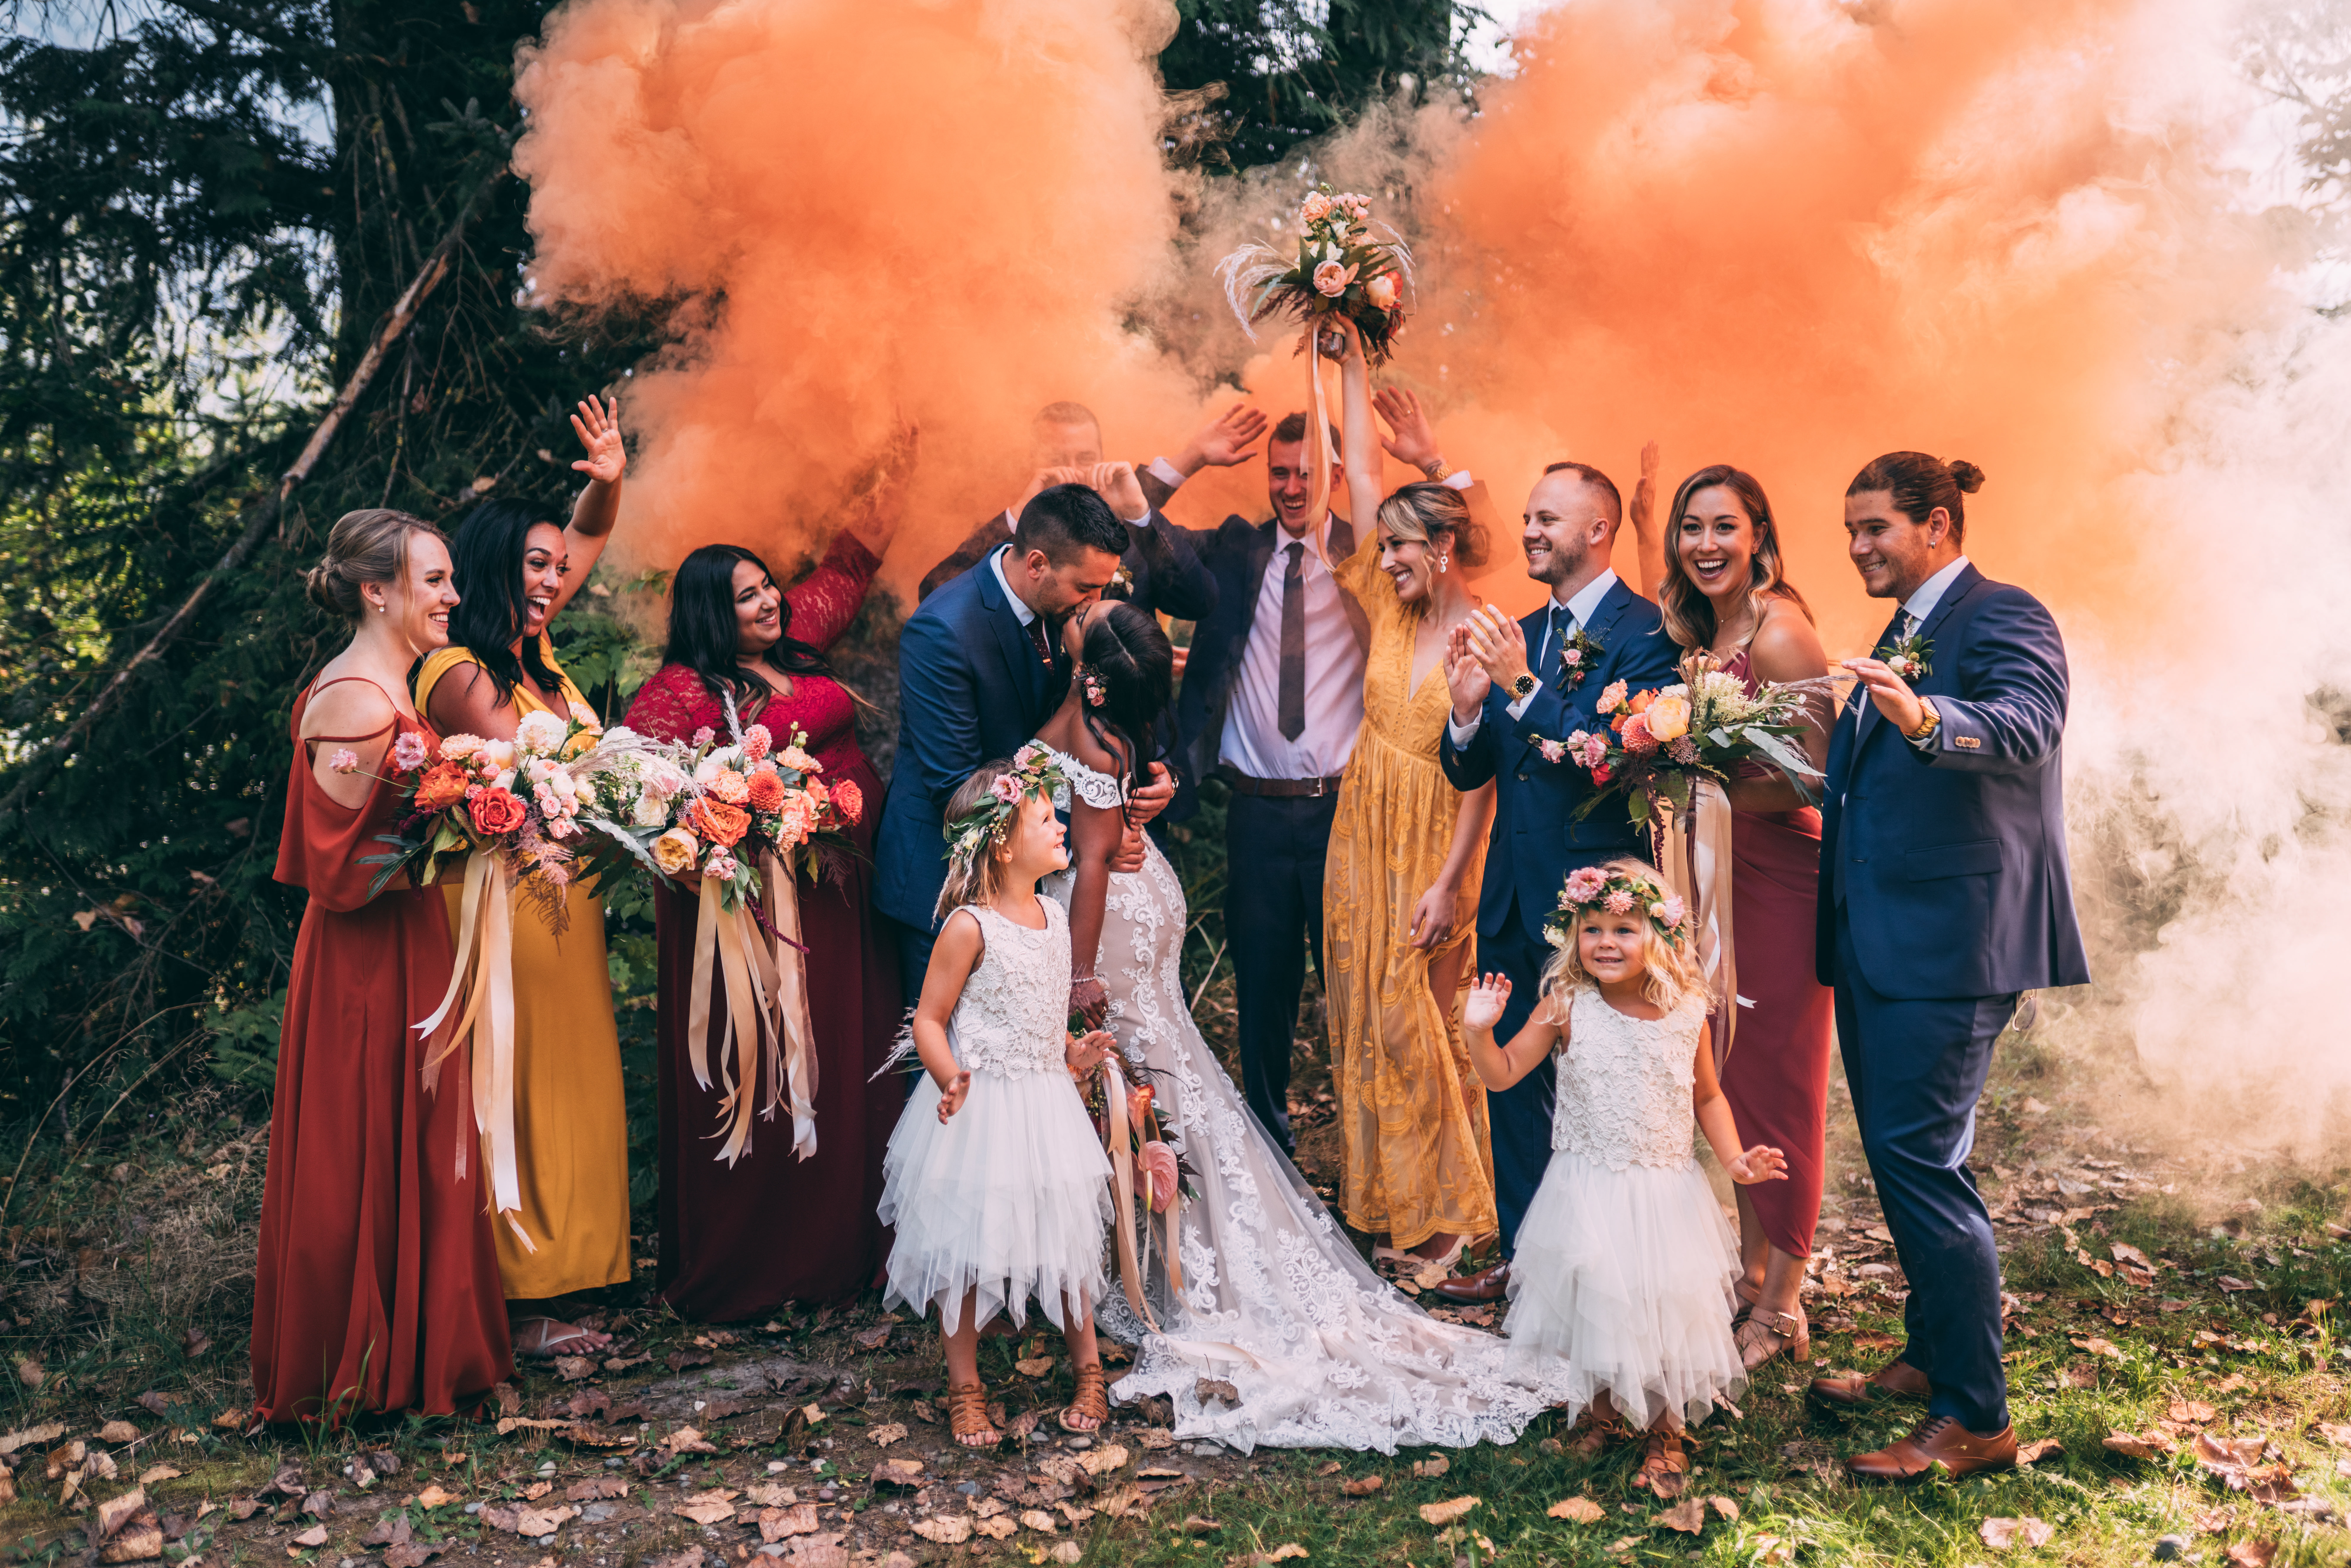 Bridal Party Smoke bomb